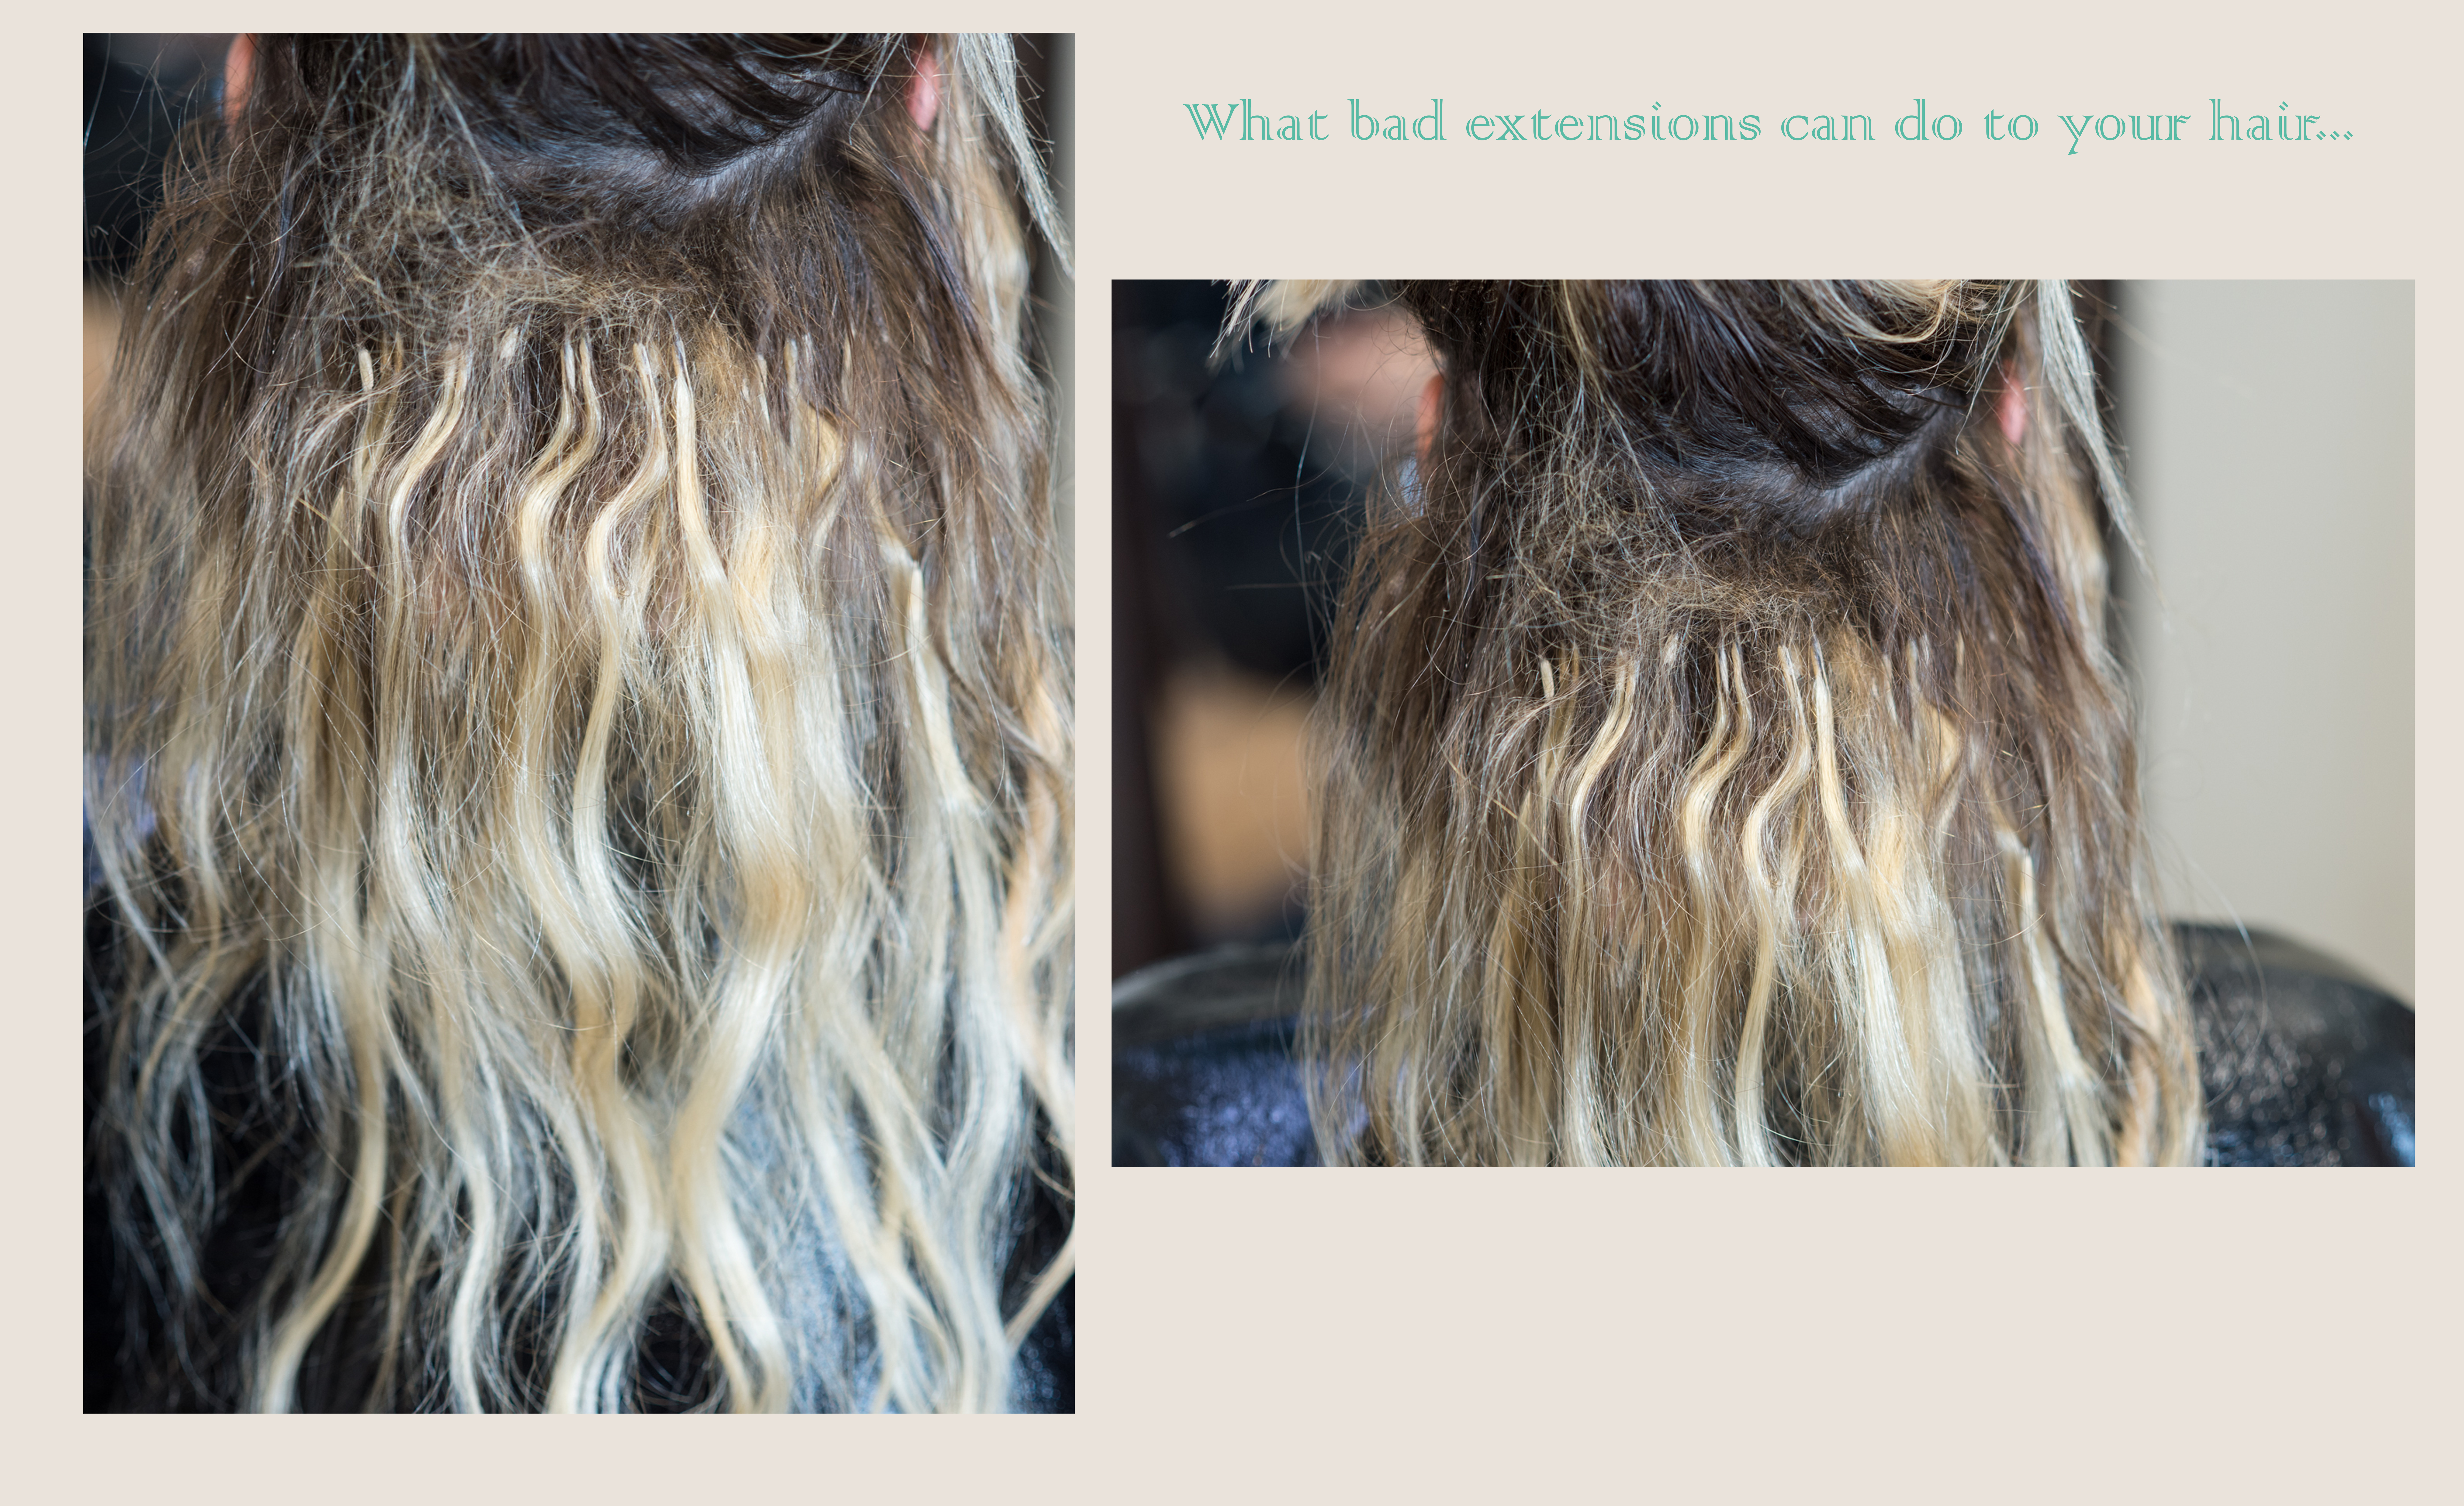 About Hair Extensions